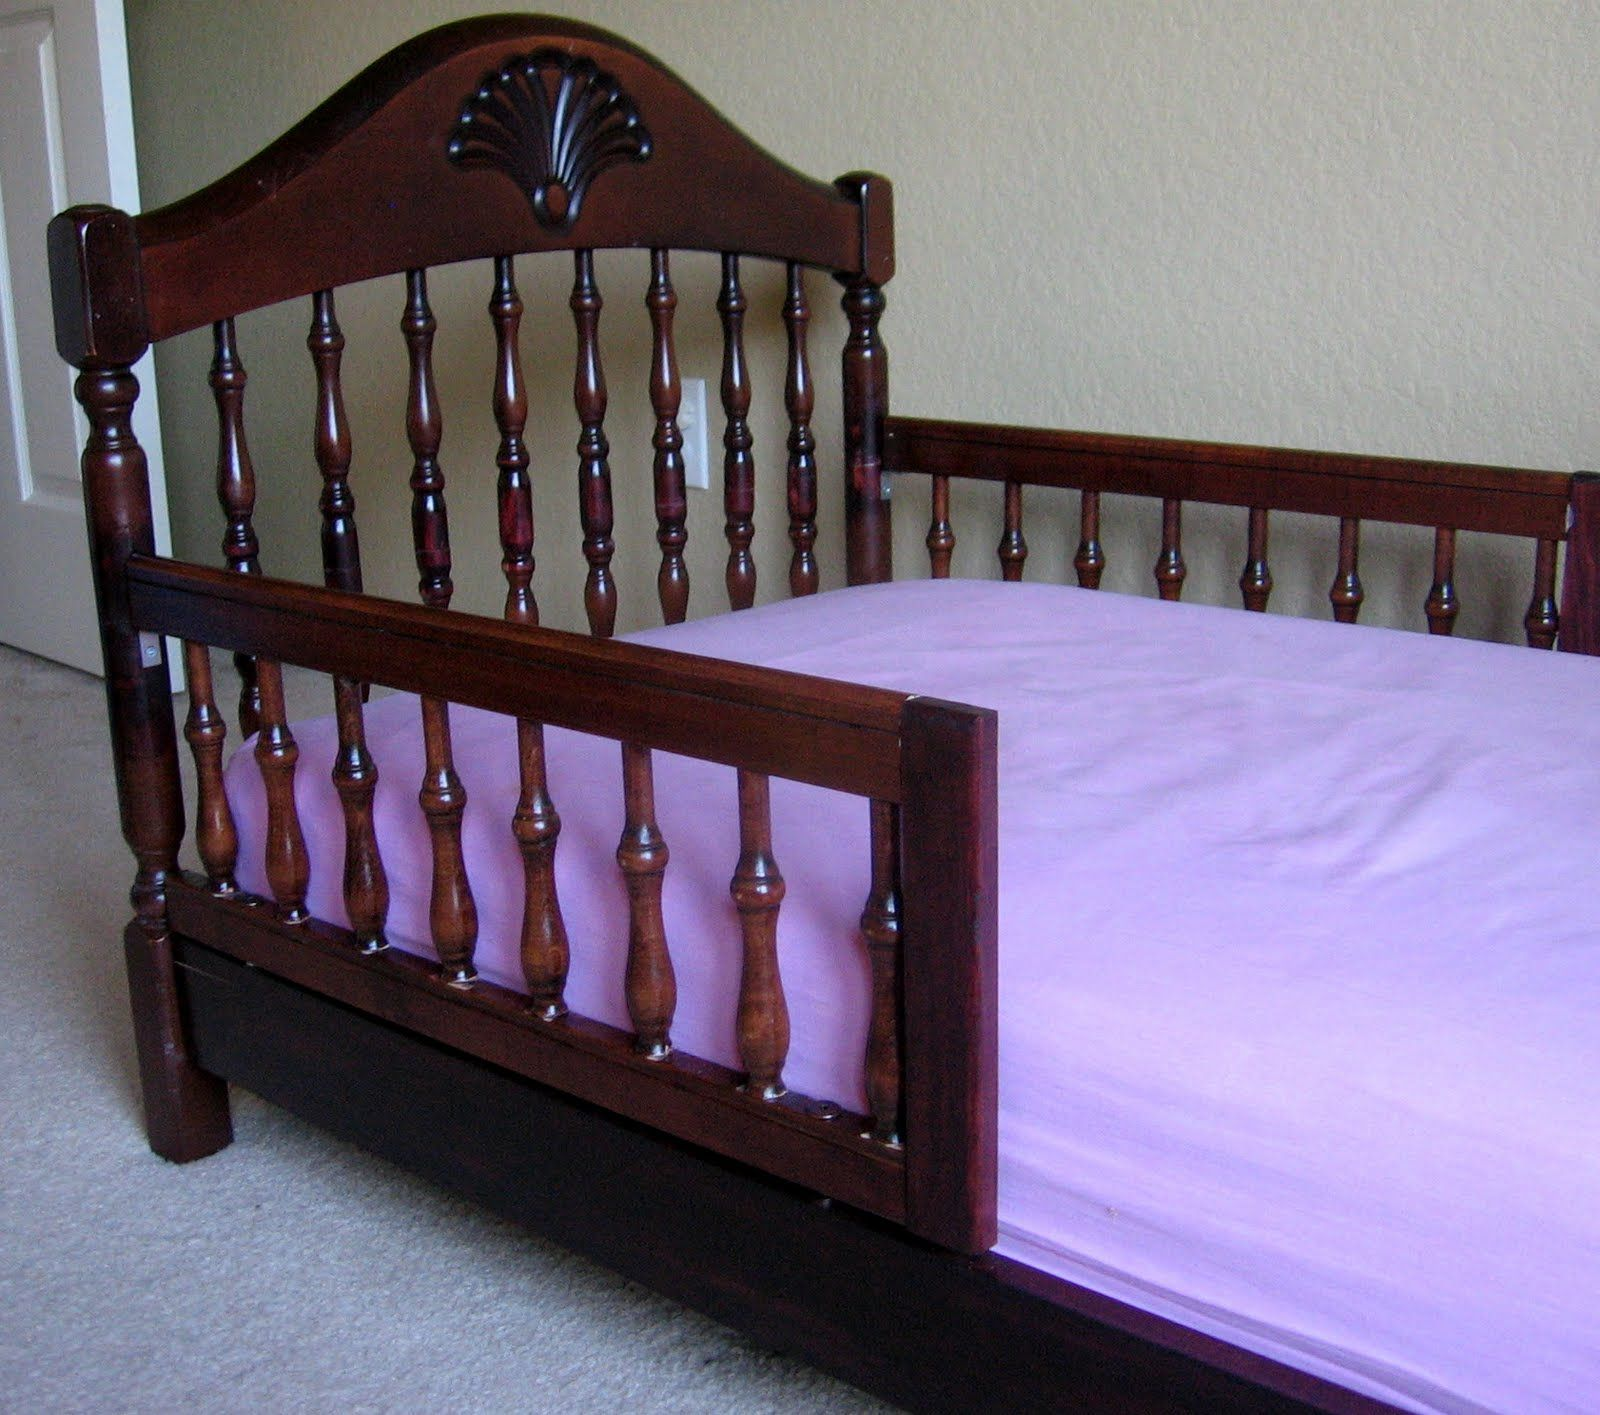 cache beds with best into and daybedr enchanting nursery on ideas conversion to rail bedr inspiring toddler convert crib baby cribs turns that turn grey bed convertible wood daybed